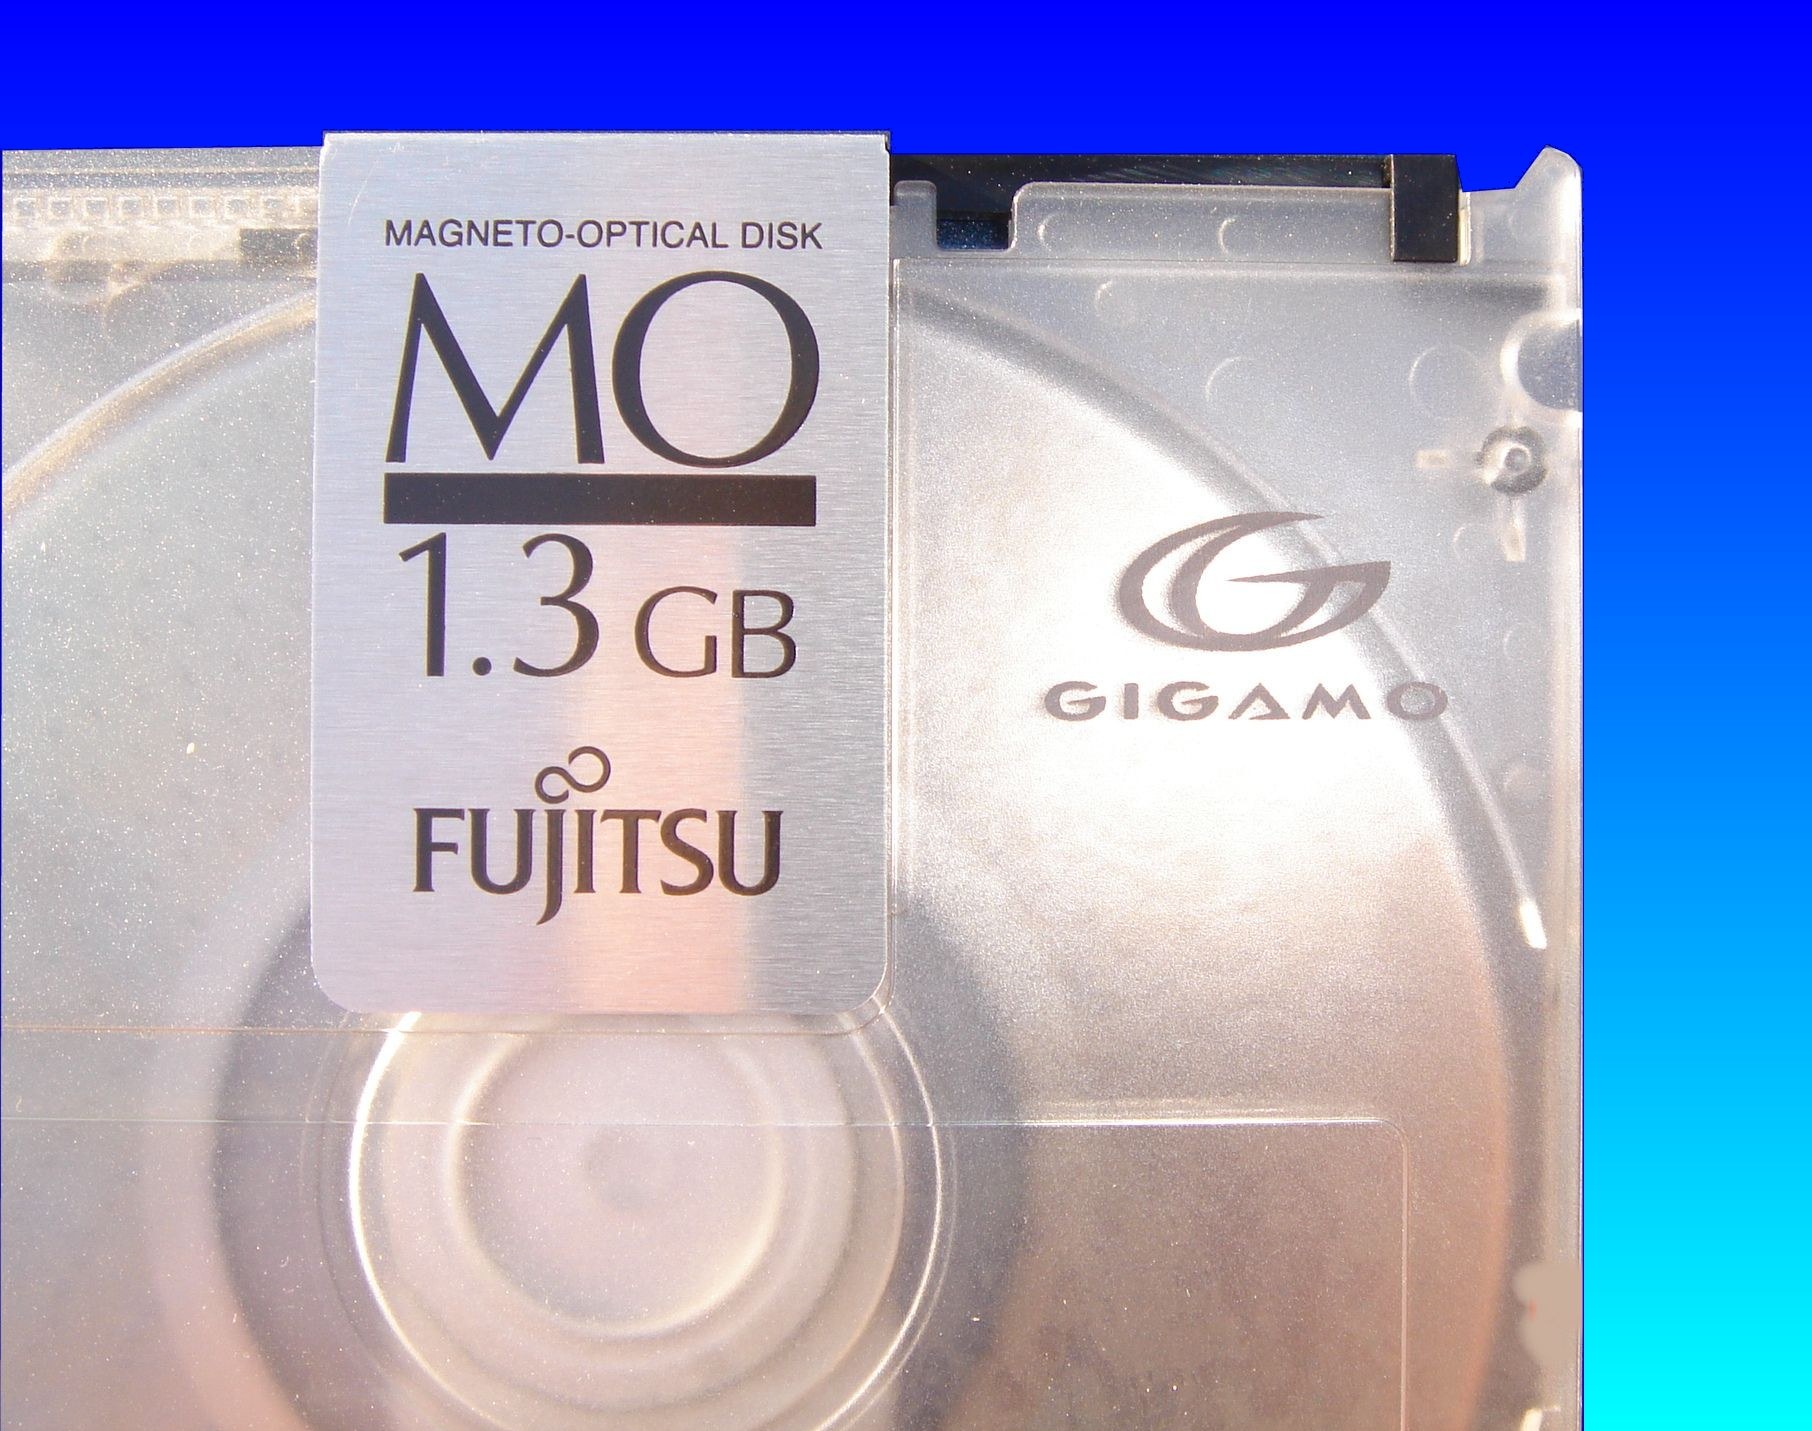 A close up of Gigamo disk by Fujitsu. This 1.3gb disk needed the stroed files transferring to CD.